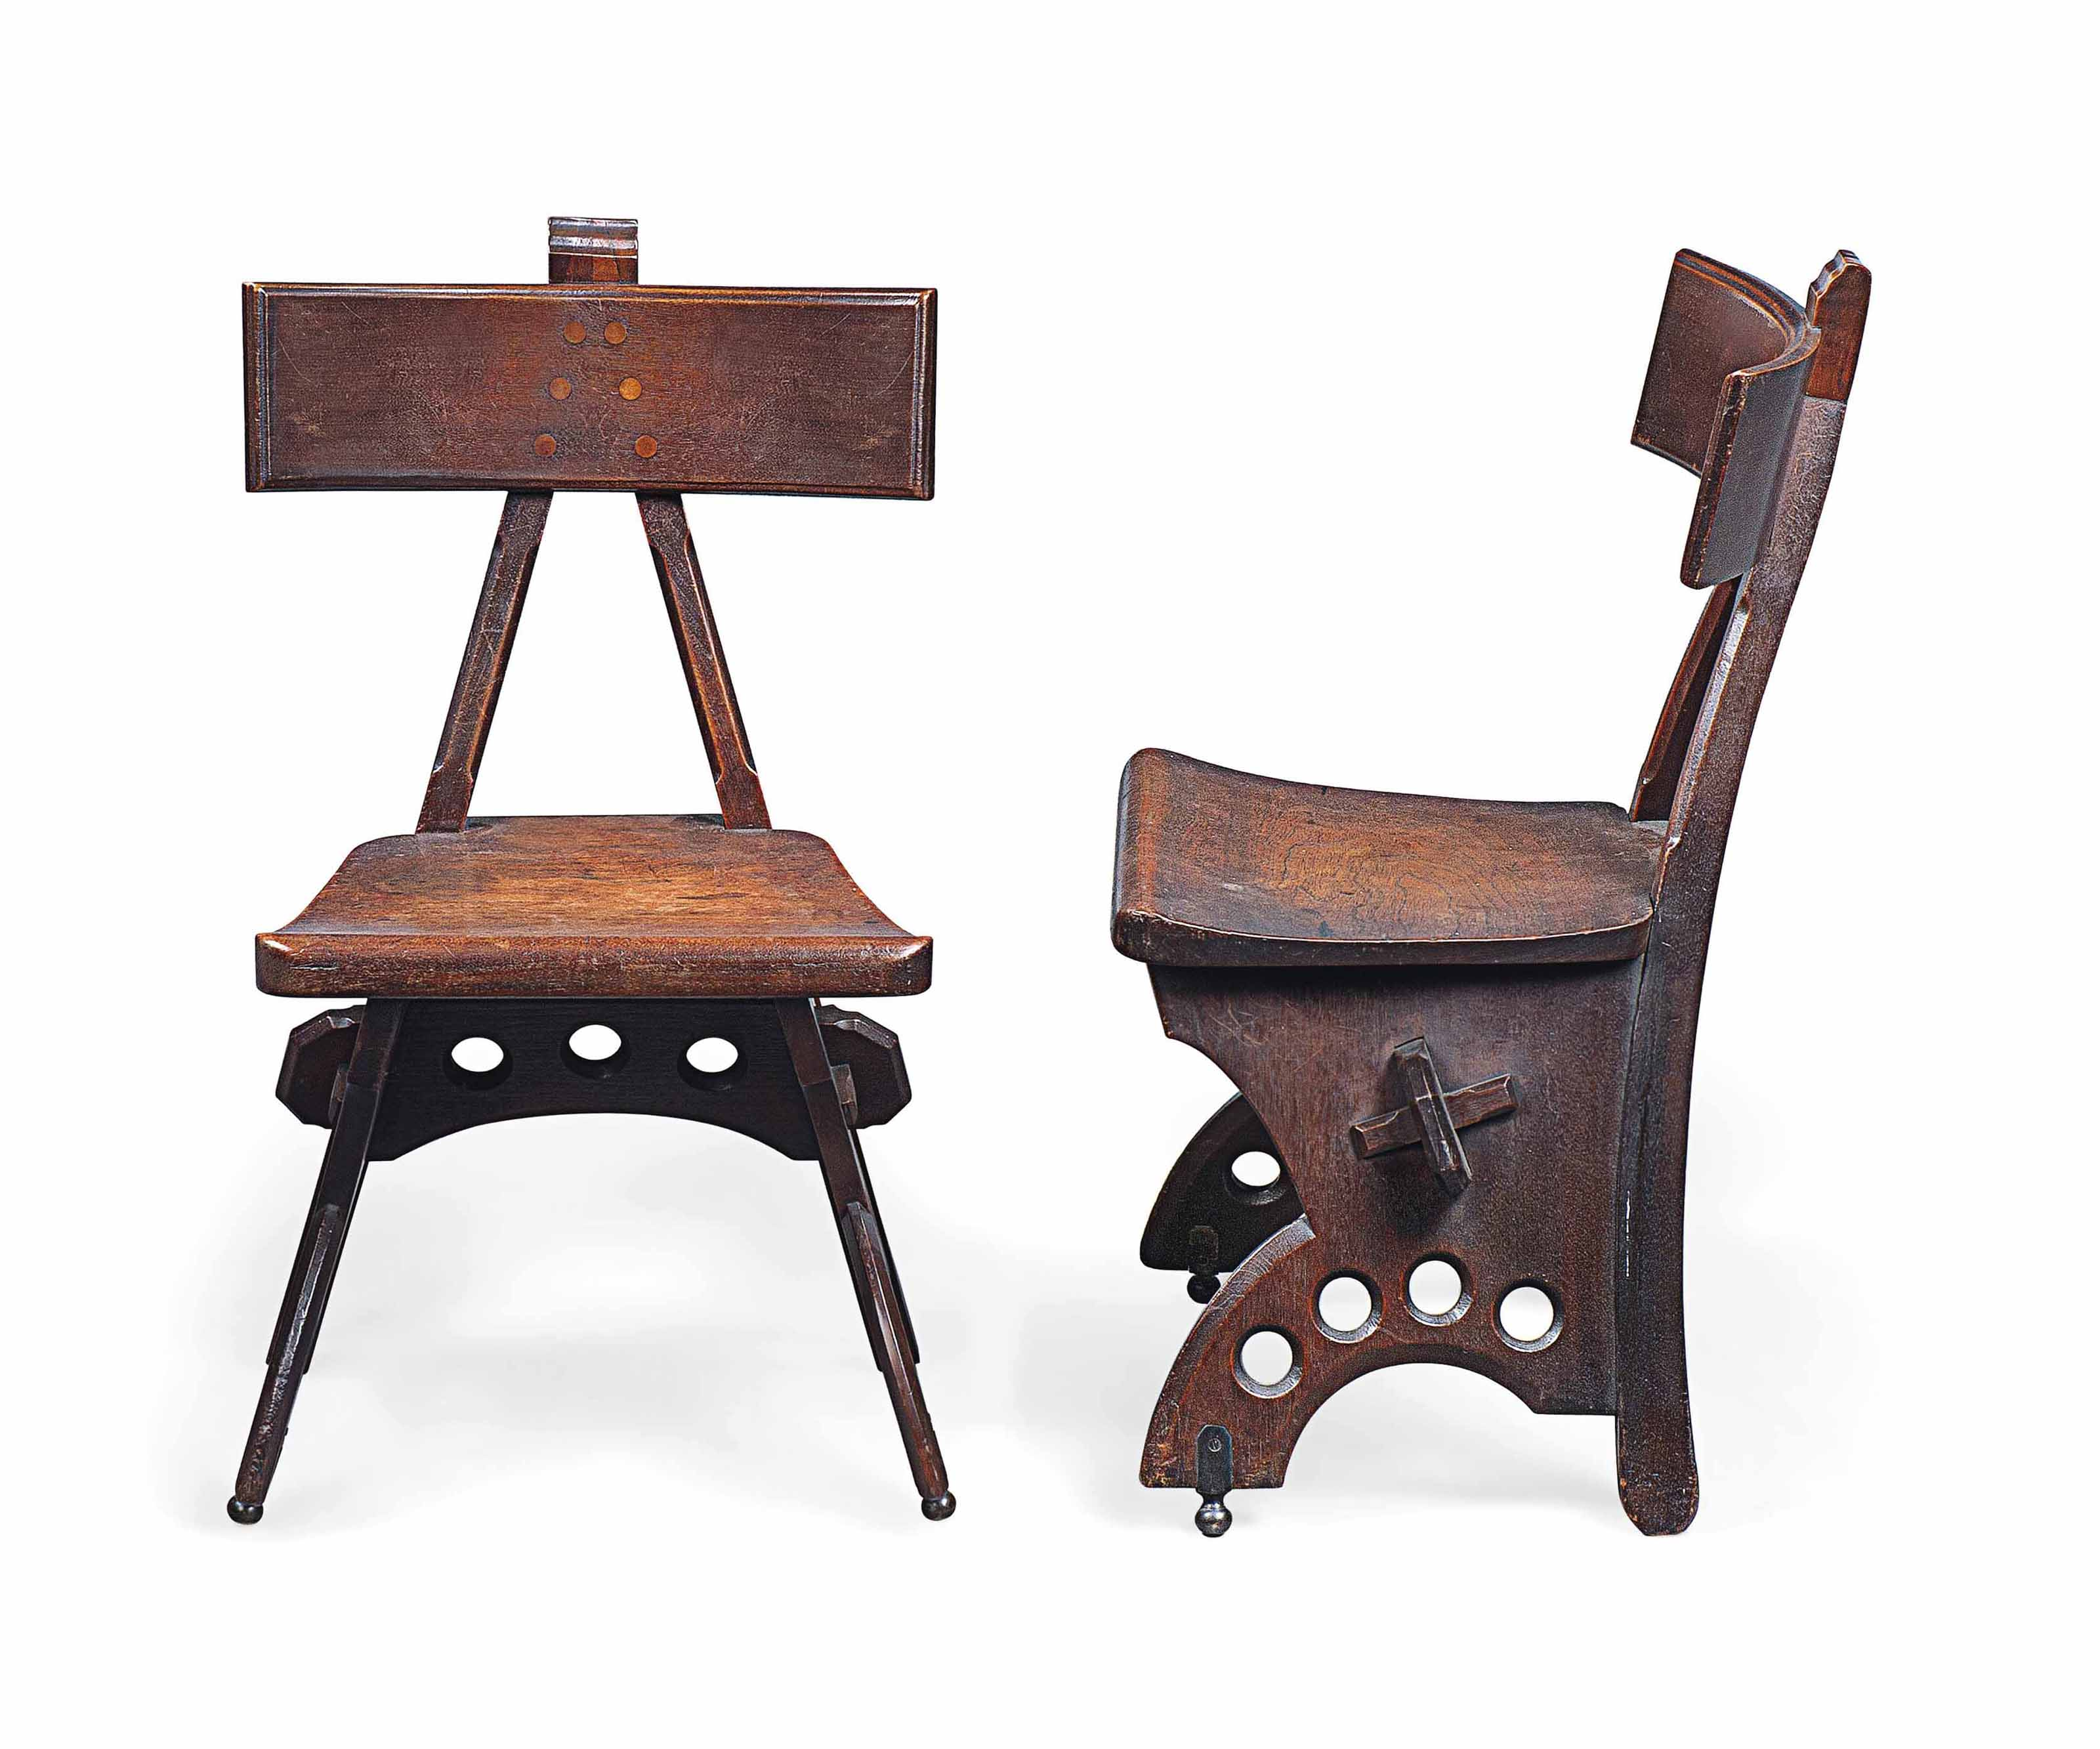 A PAIR OF E.W. PUGIN (1833-1886) 'GRANVILLE' OAK CHAIRS